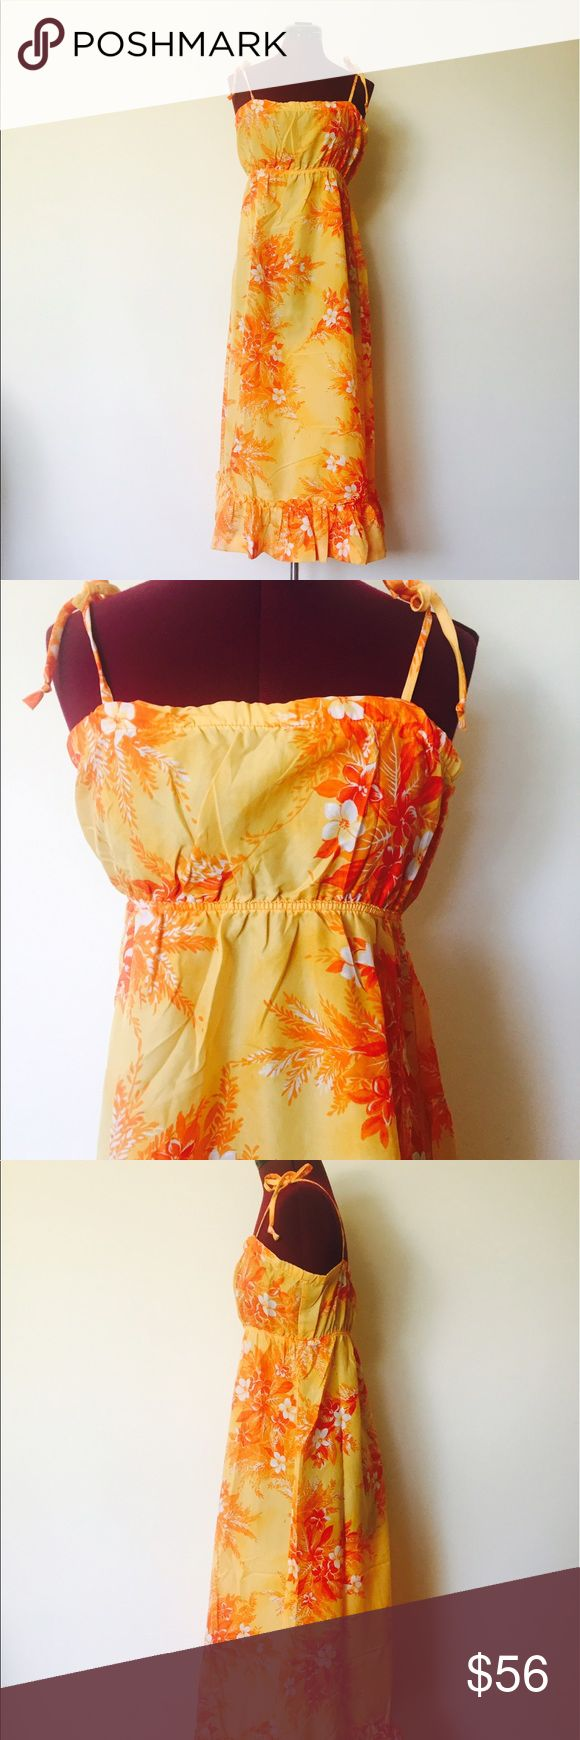 """Vintage 60s Hawaiian Maxi Dress S M Vintage Hawaiian maxi dress with tie up spaghetti straps and an elastic empire waist. By Pompare    Material: Nylon  Color: Shades of orange  Maker: Pompare  Origin: Hawaii  Era: 60's  Size: S, M    Measurements:  Bust- 34""""  Waist- 24"""" to 30""""  Hips- 46"""" Length- 49""""    Condition: very good, showing minimal signs of use. Vintage Dresses Maxi"""